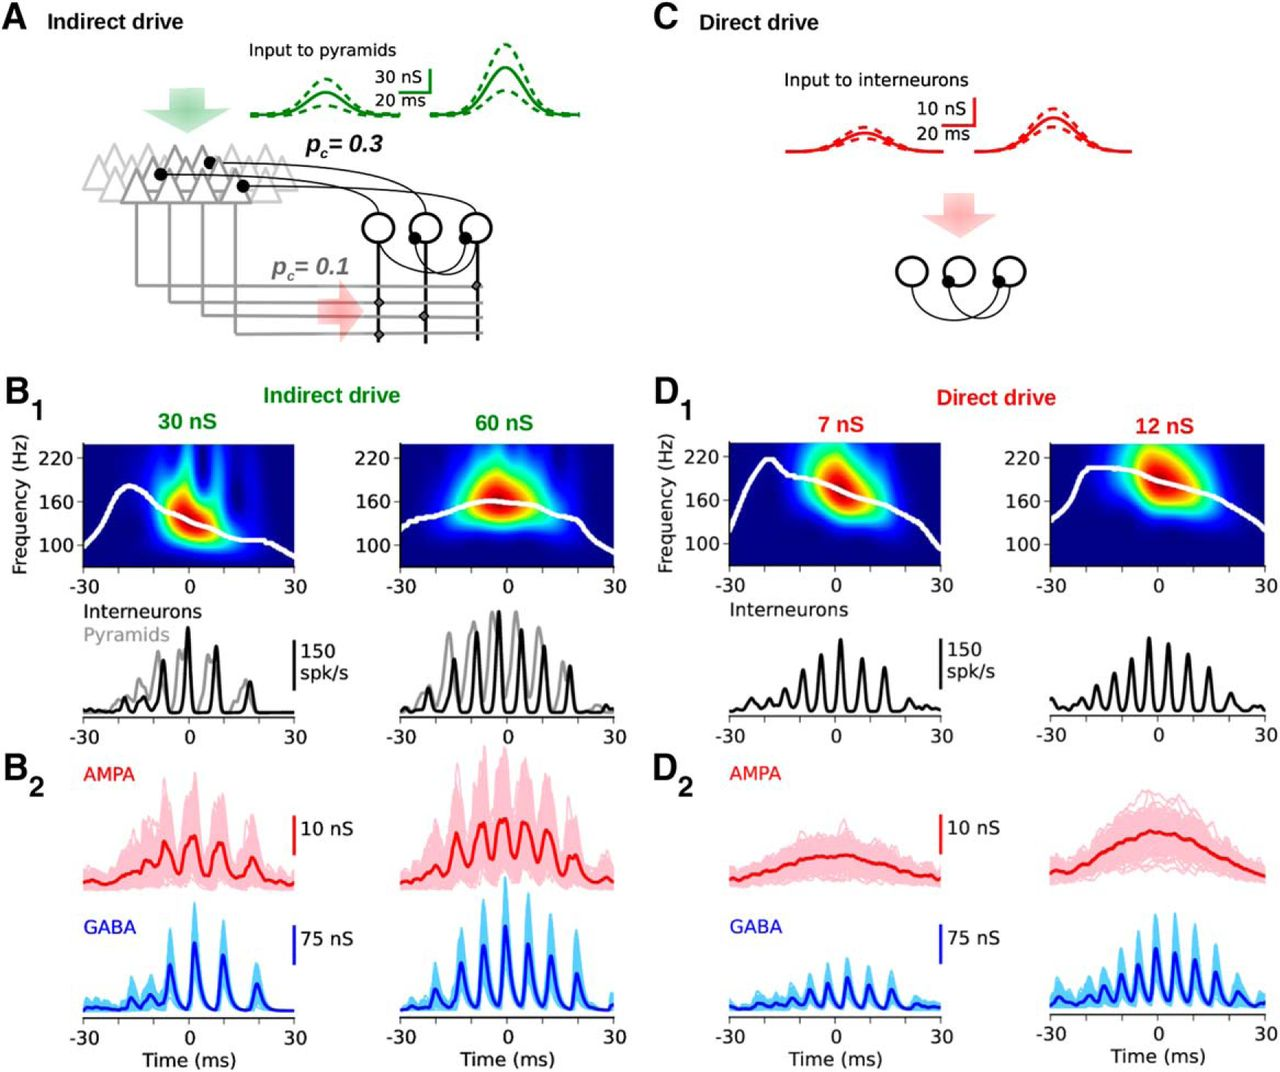 Hippocampal Ripple Oscillations And Inhibition First Network Models For The Circuit Also Determine Frequency Of Download Figure Open In New Tab